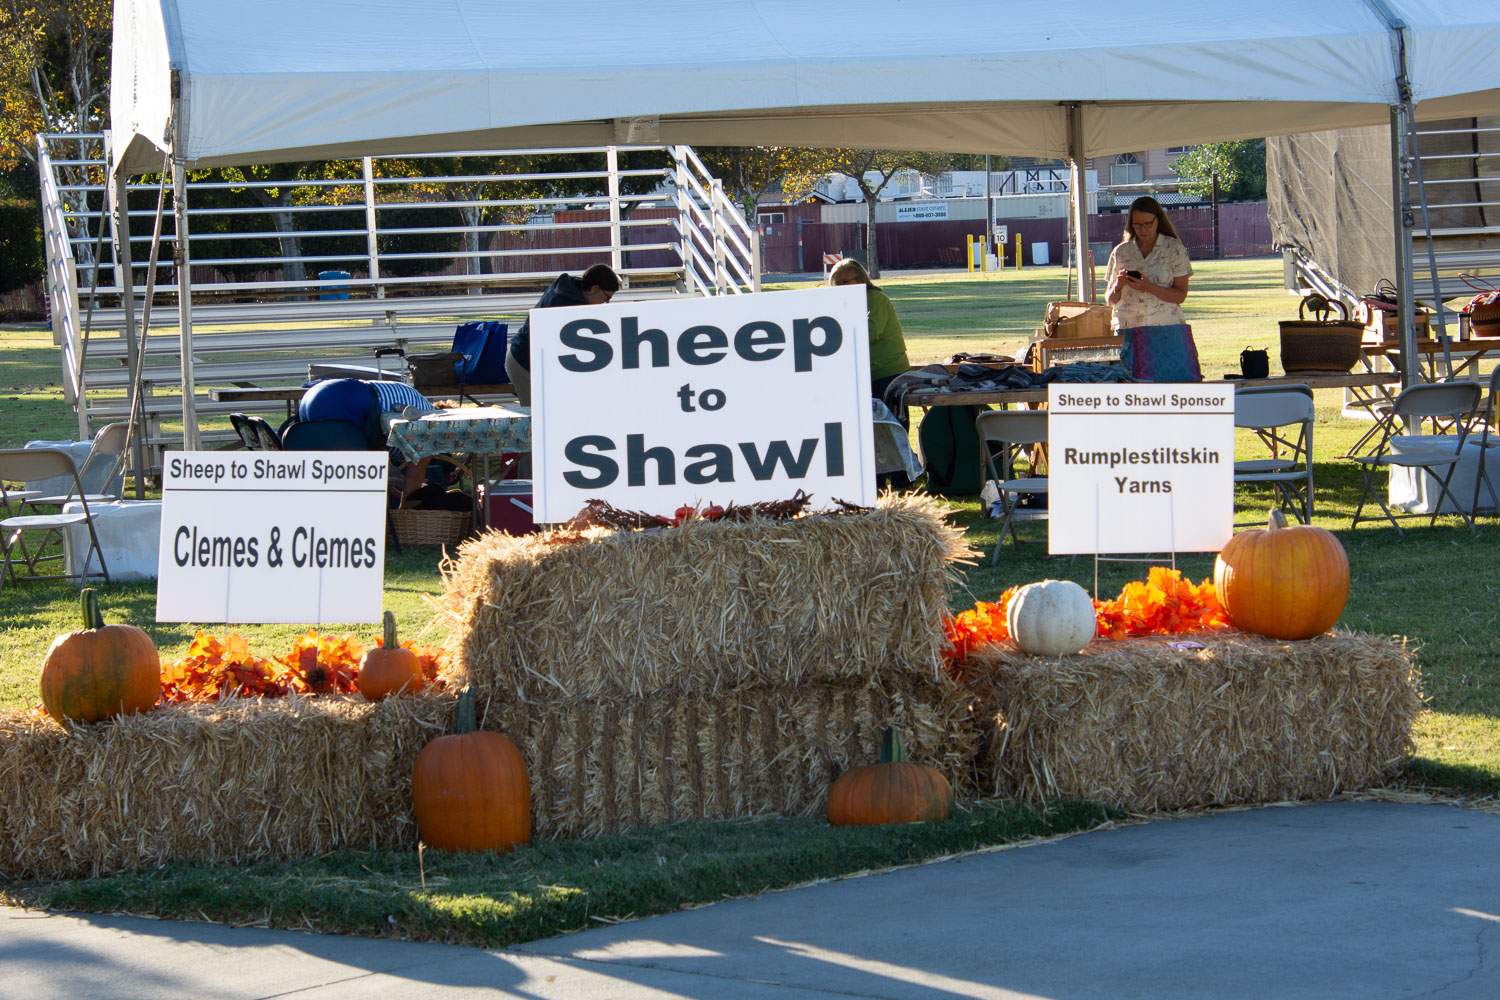 Sheep to shawl tent at Lambtown